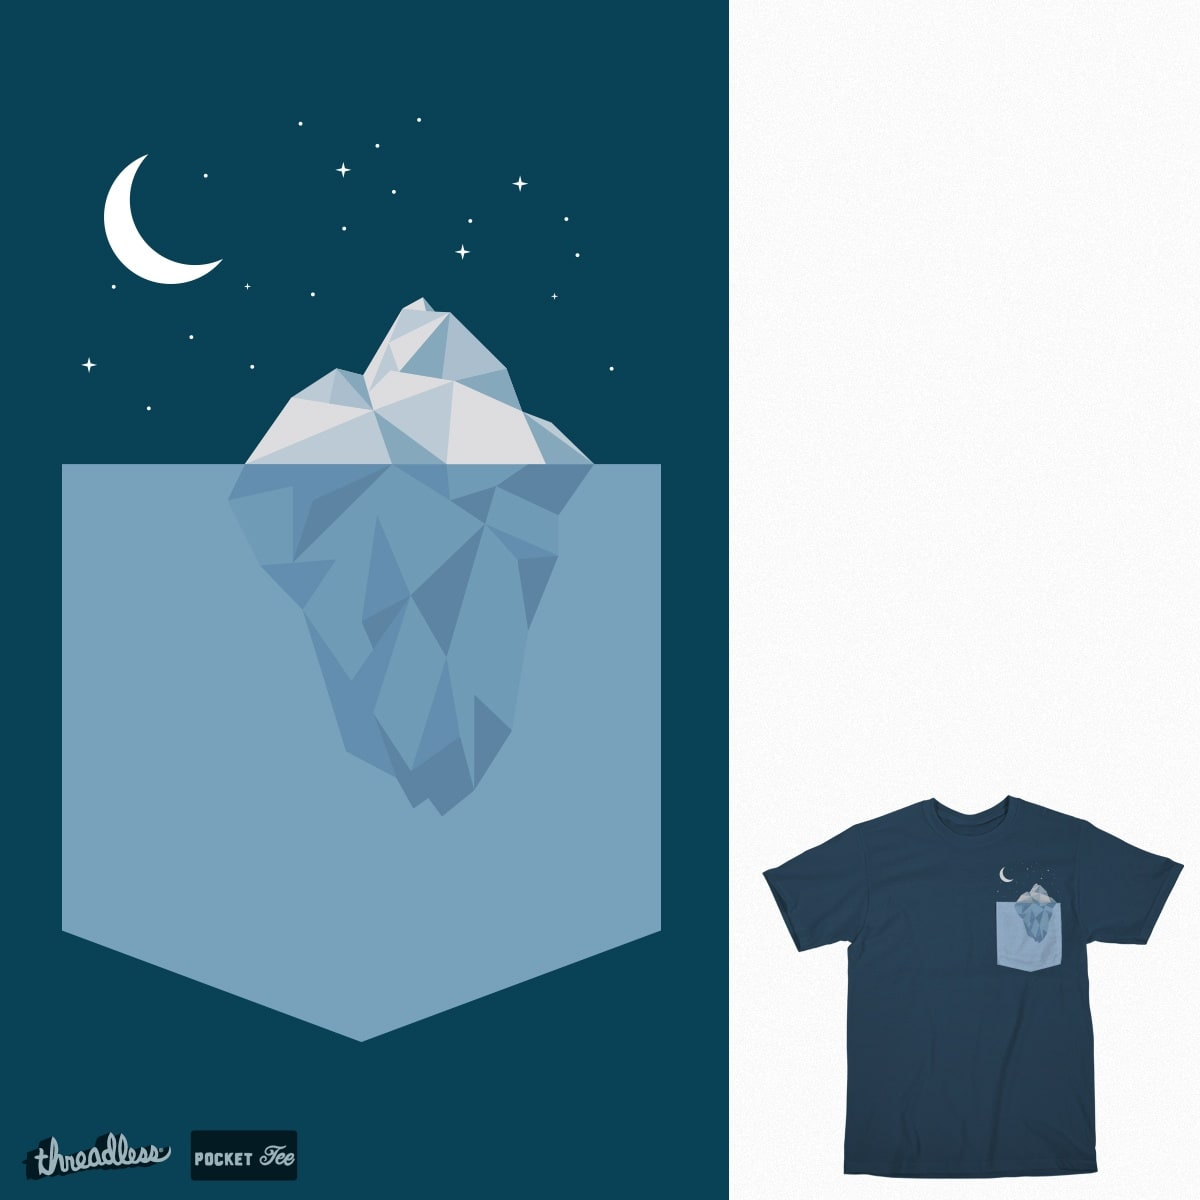 Glacier Cove by srhartman on Threadless